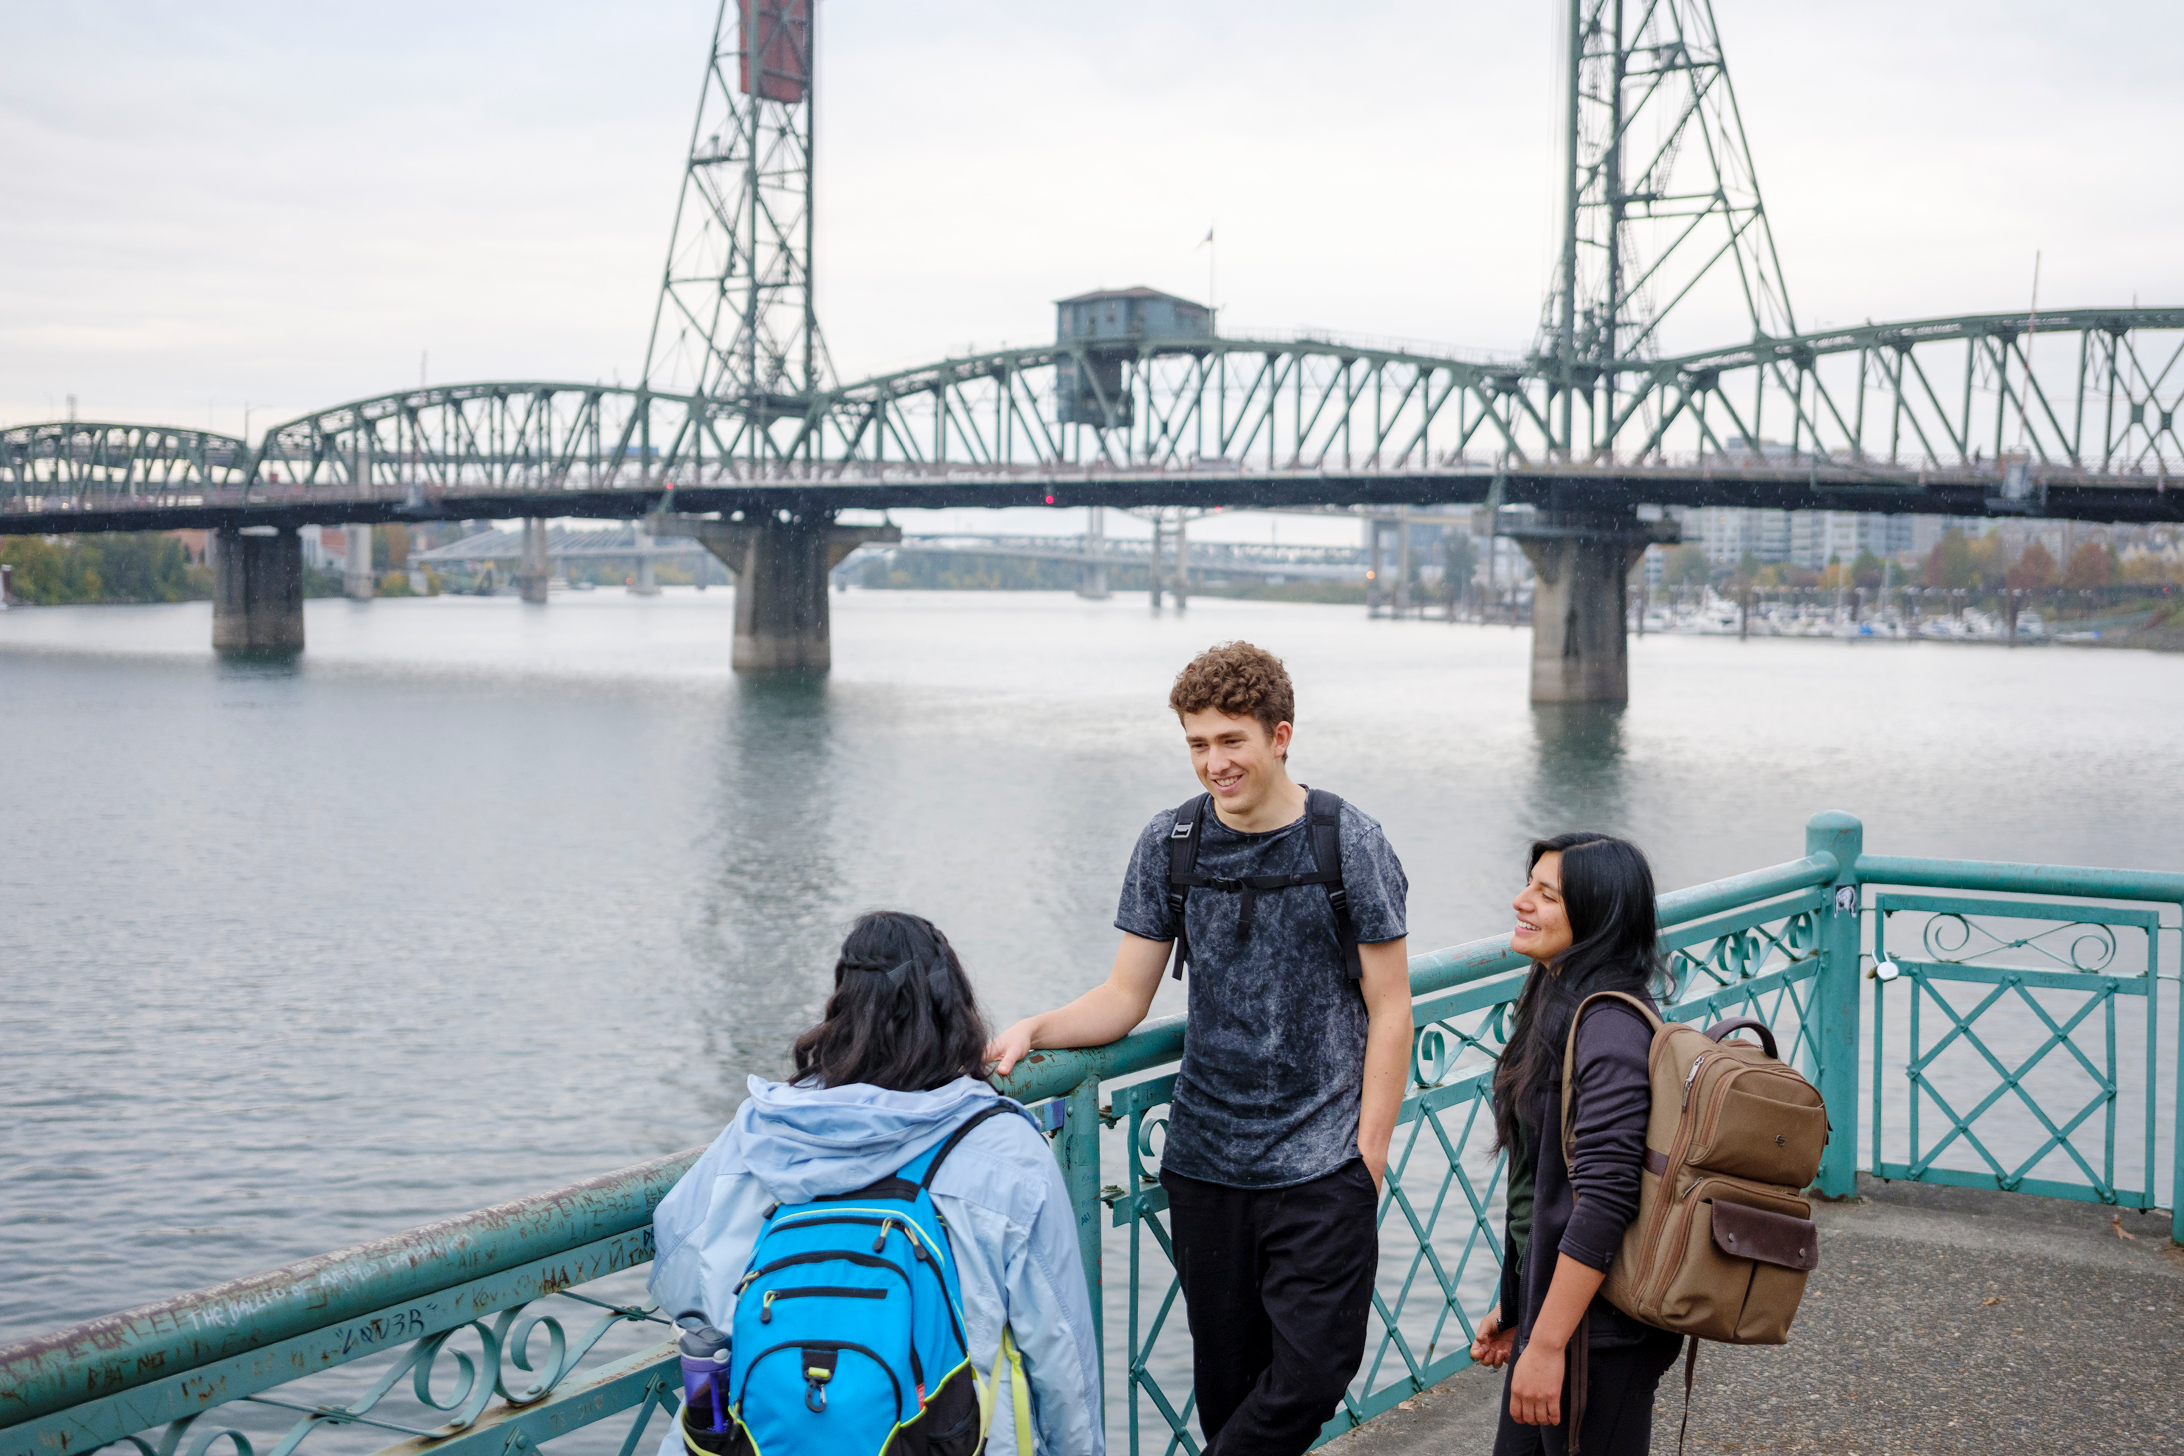 Students standing near Hawthorne Bridge